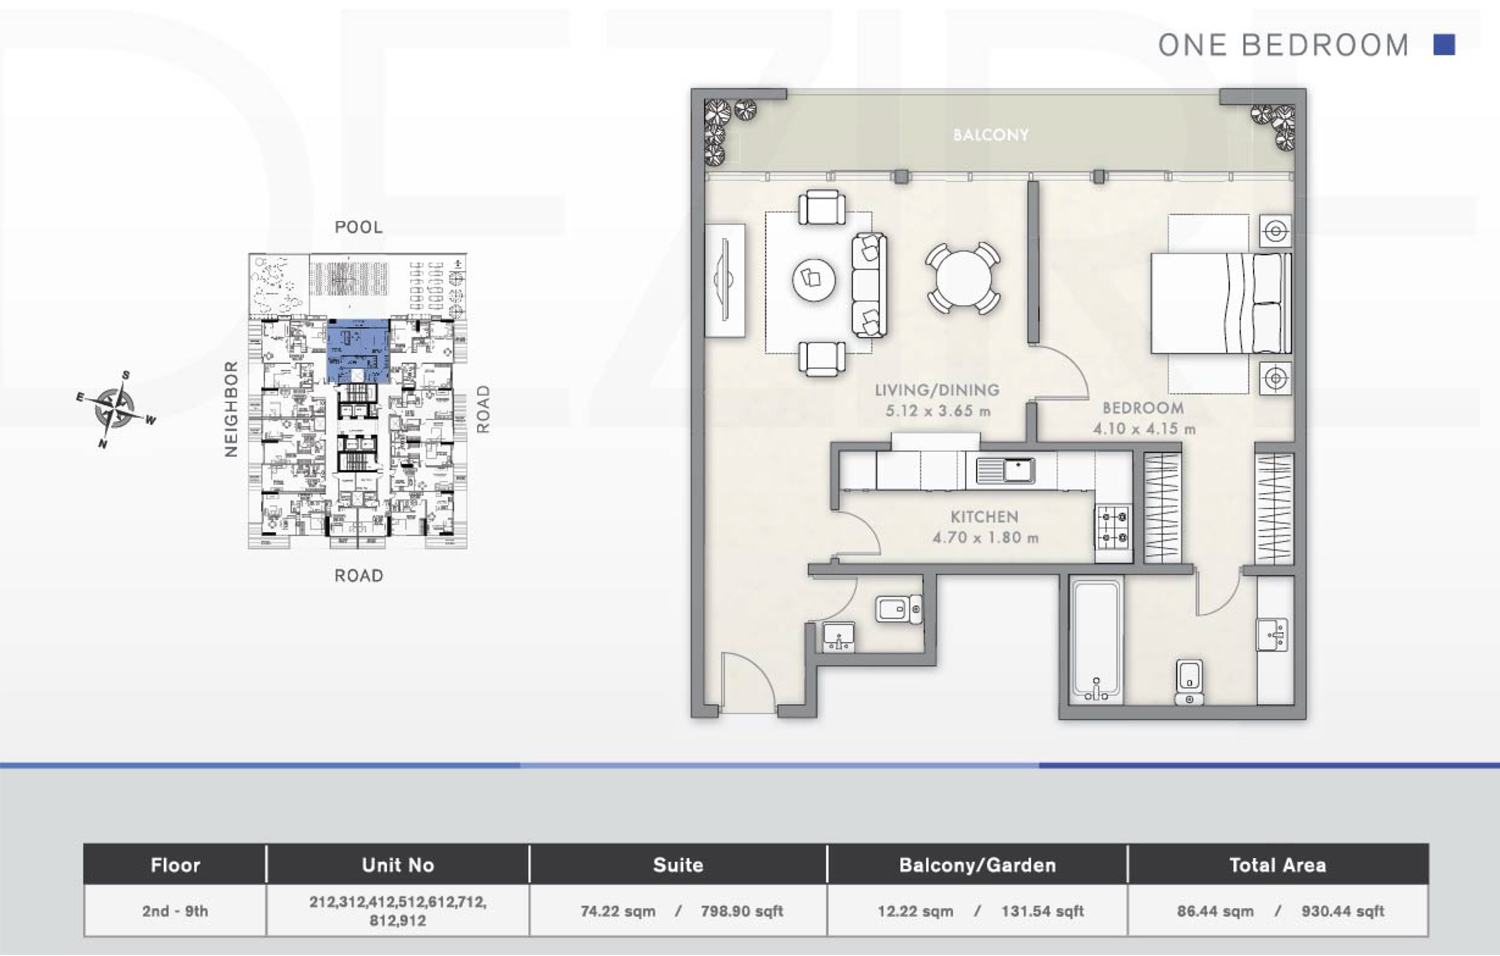 1 Bedroom Floor Plan 6